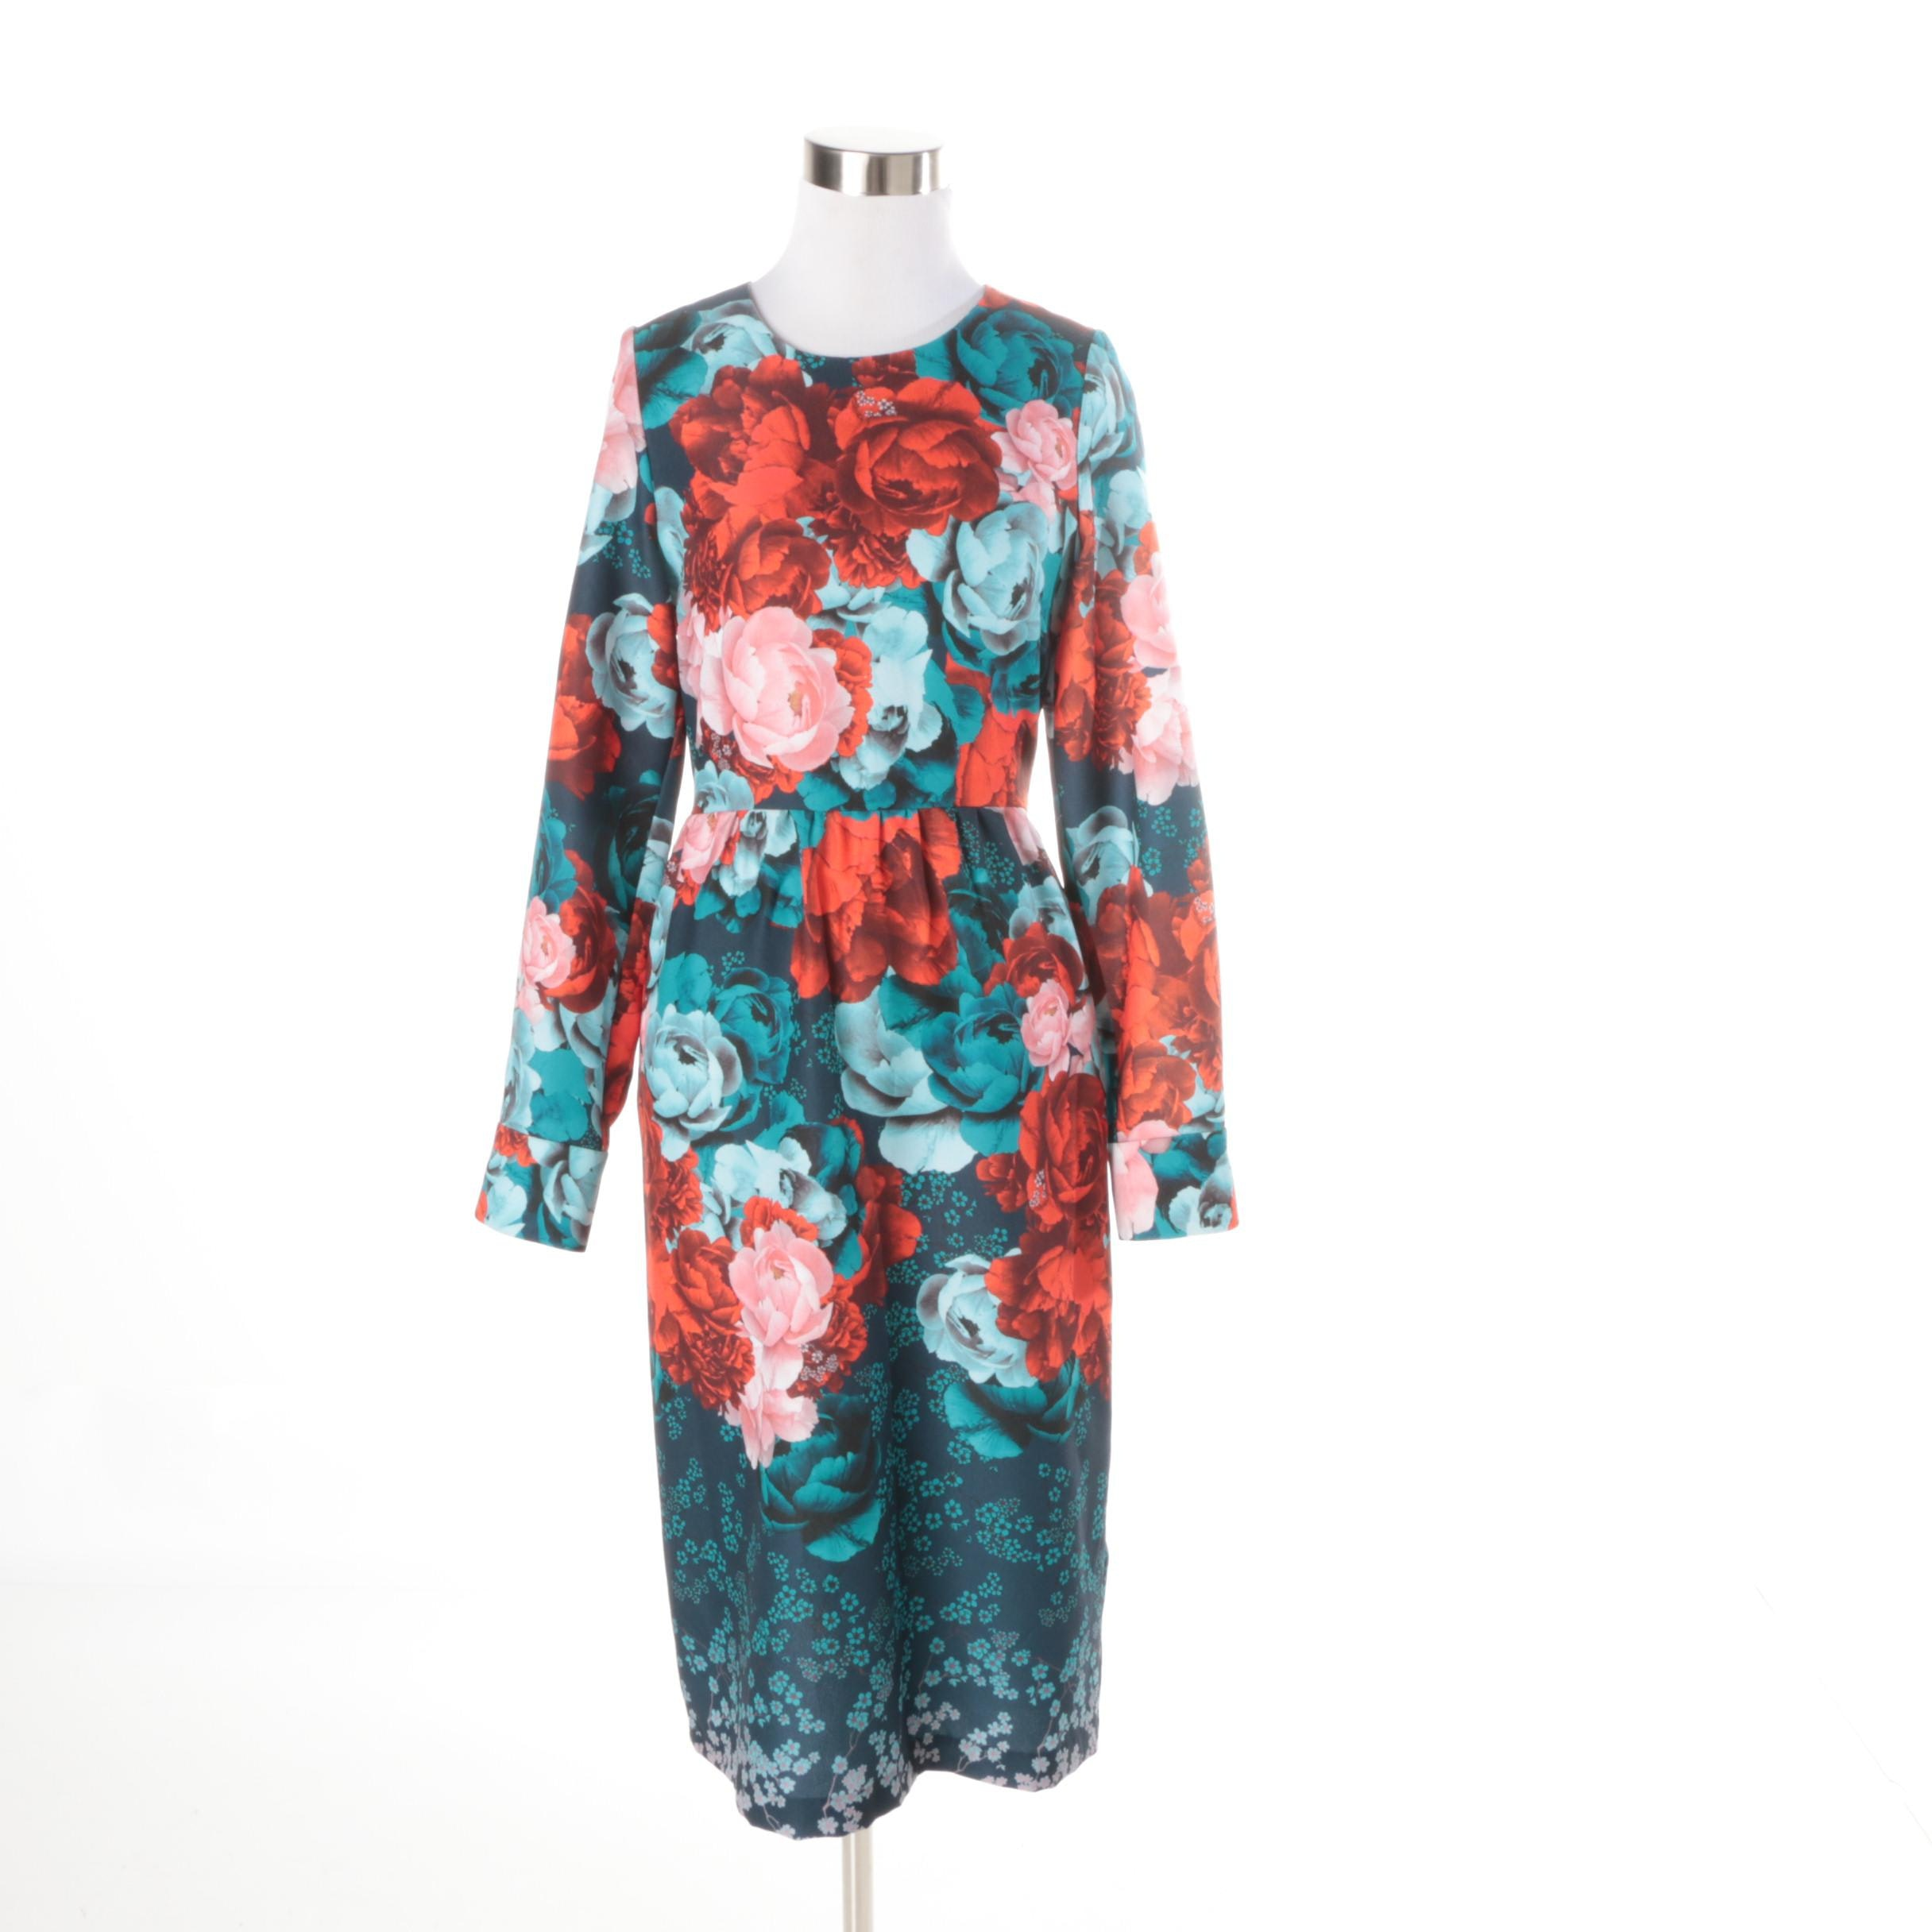 Trelise Cooper Floral Print Fit and Flare Sample Dress